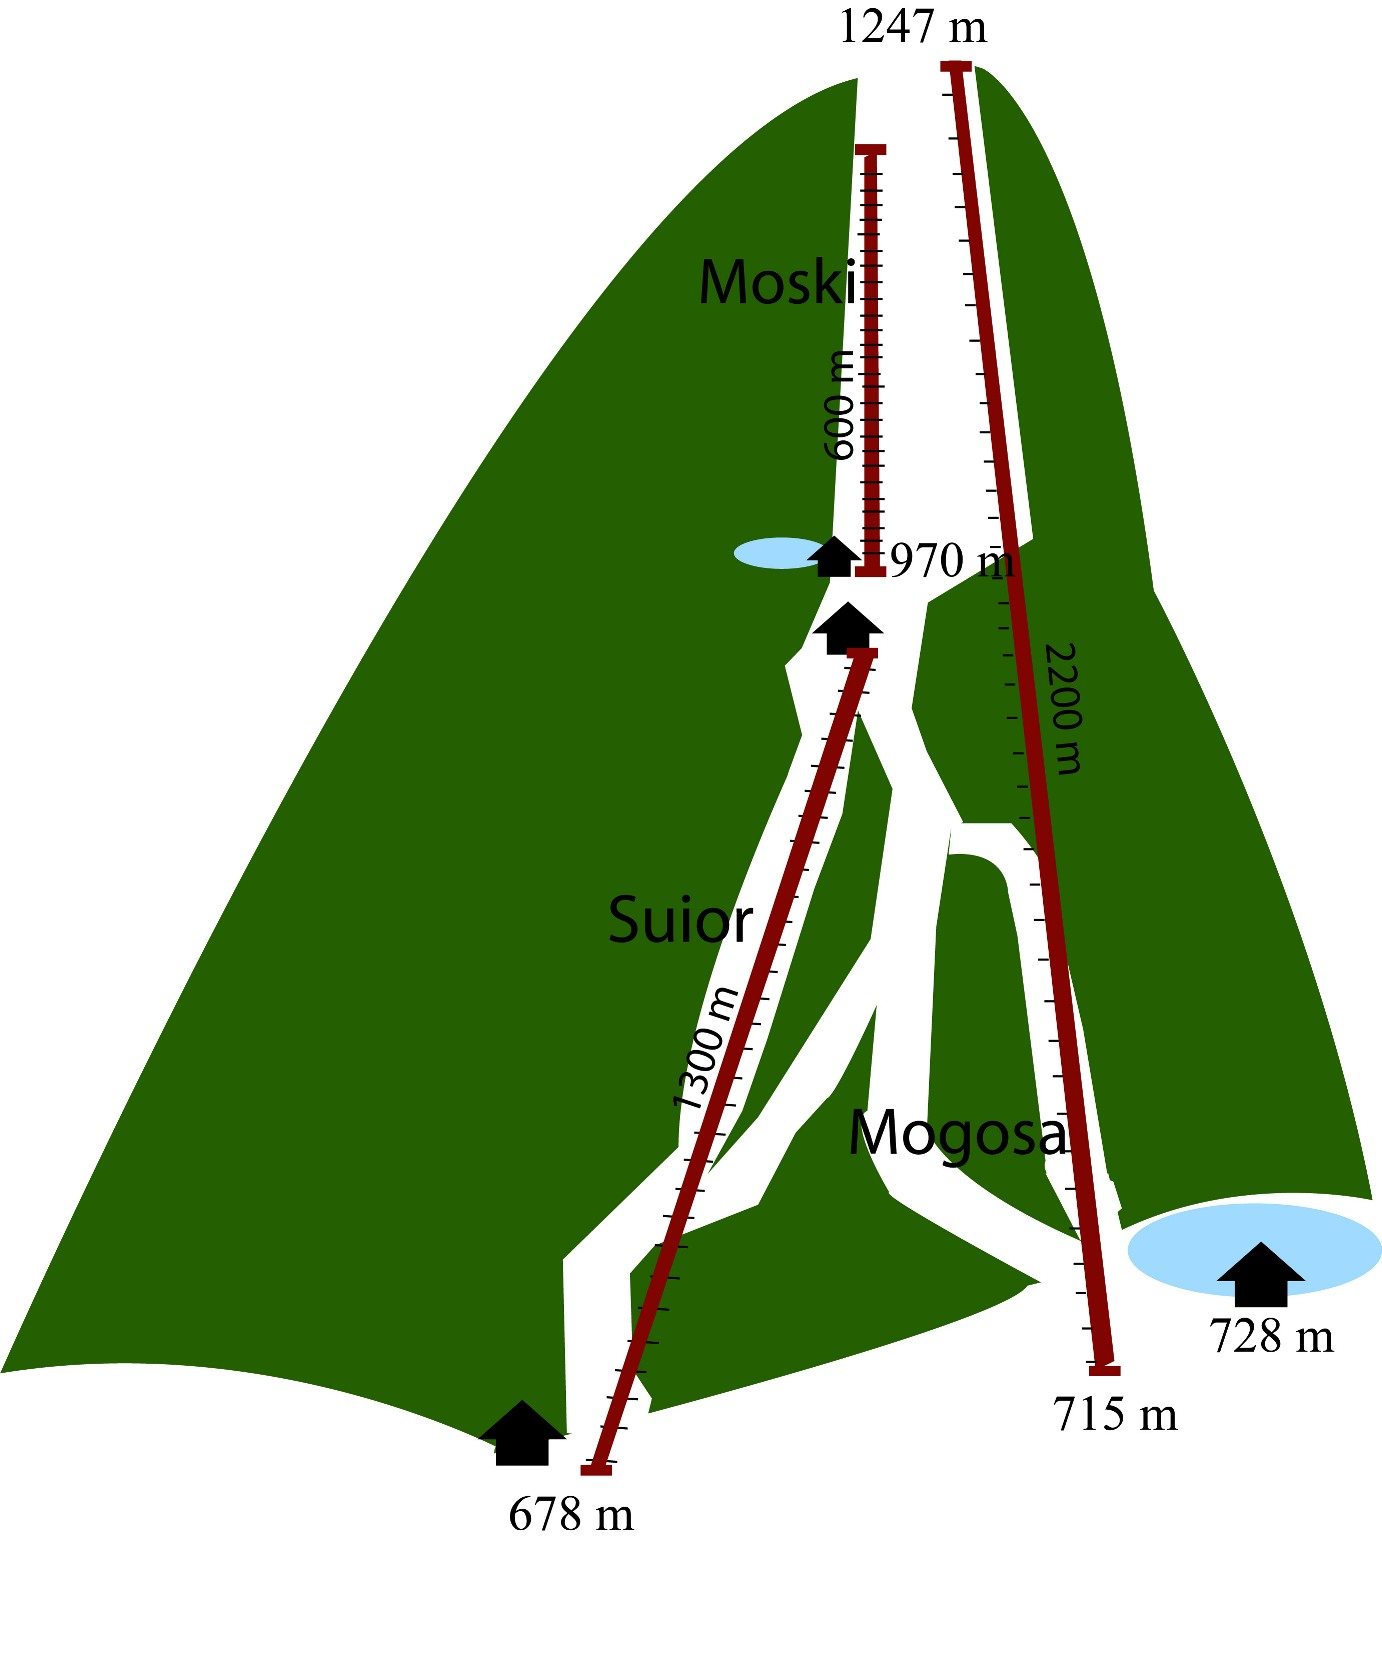 Mogoşa Piste / Trail Map